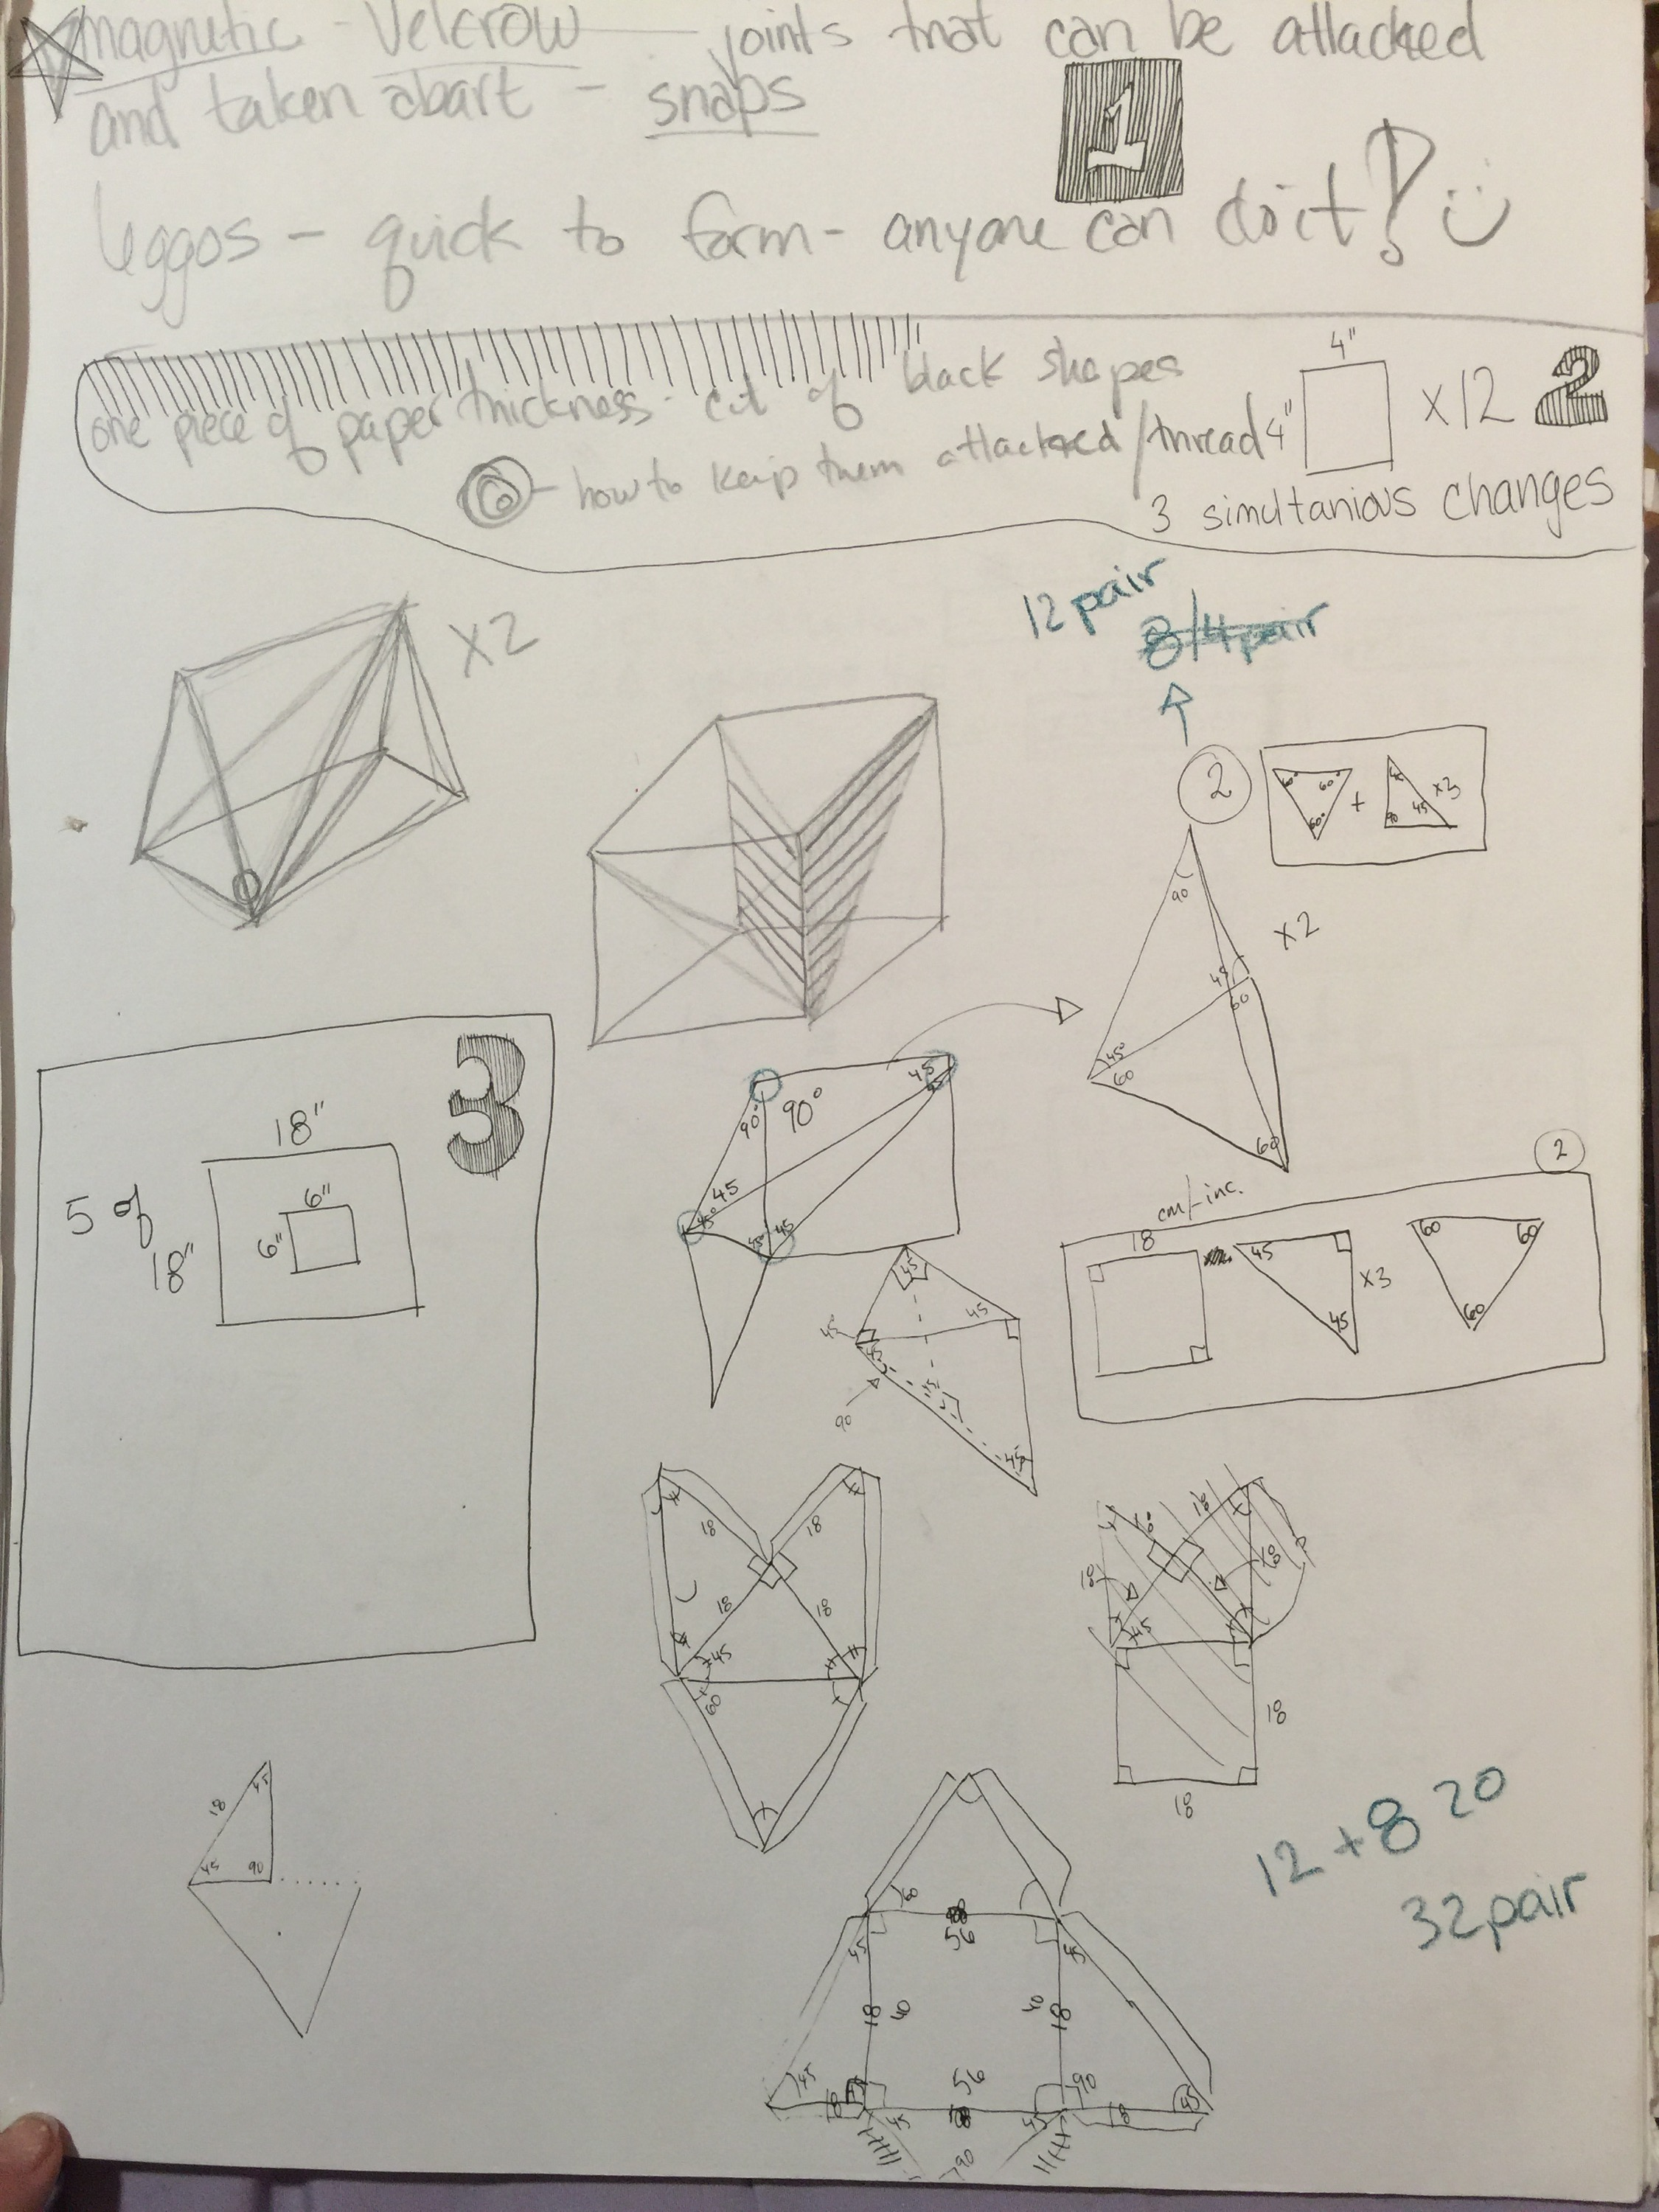 Magnetic platonic solid toy design – Mitra's Artist Diary